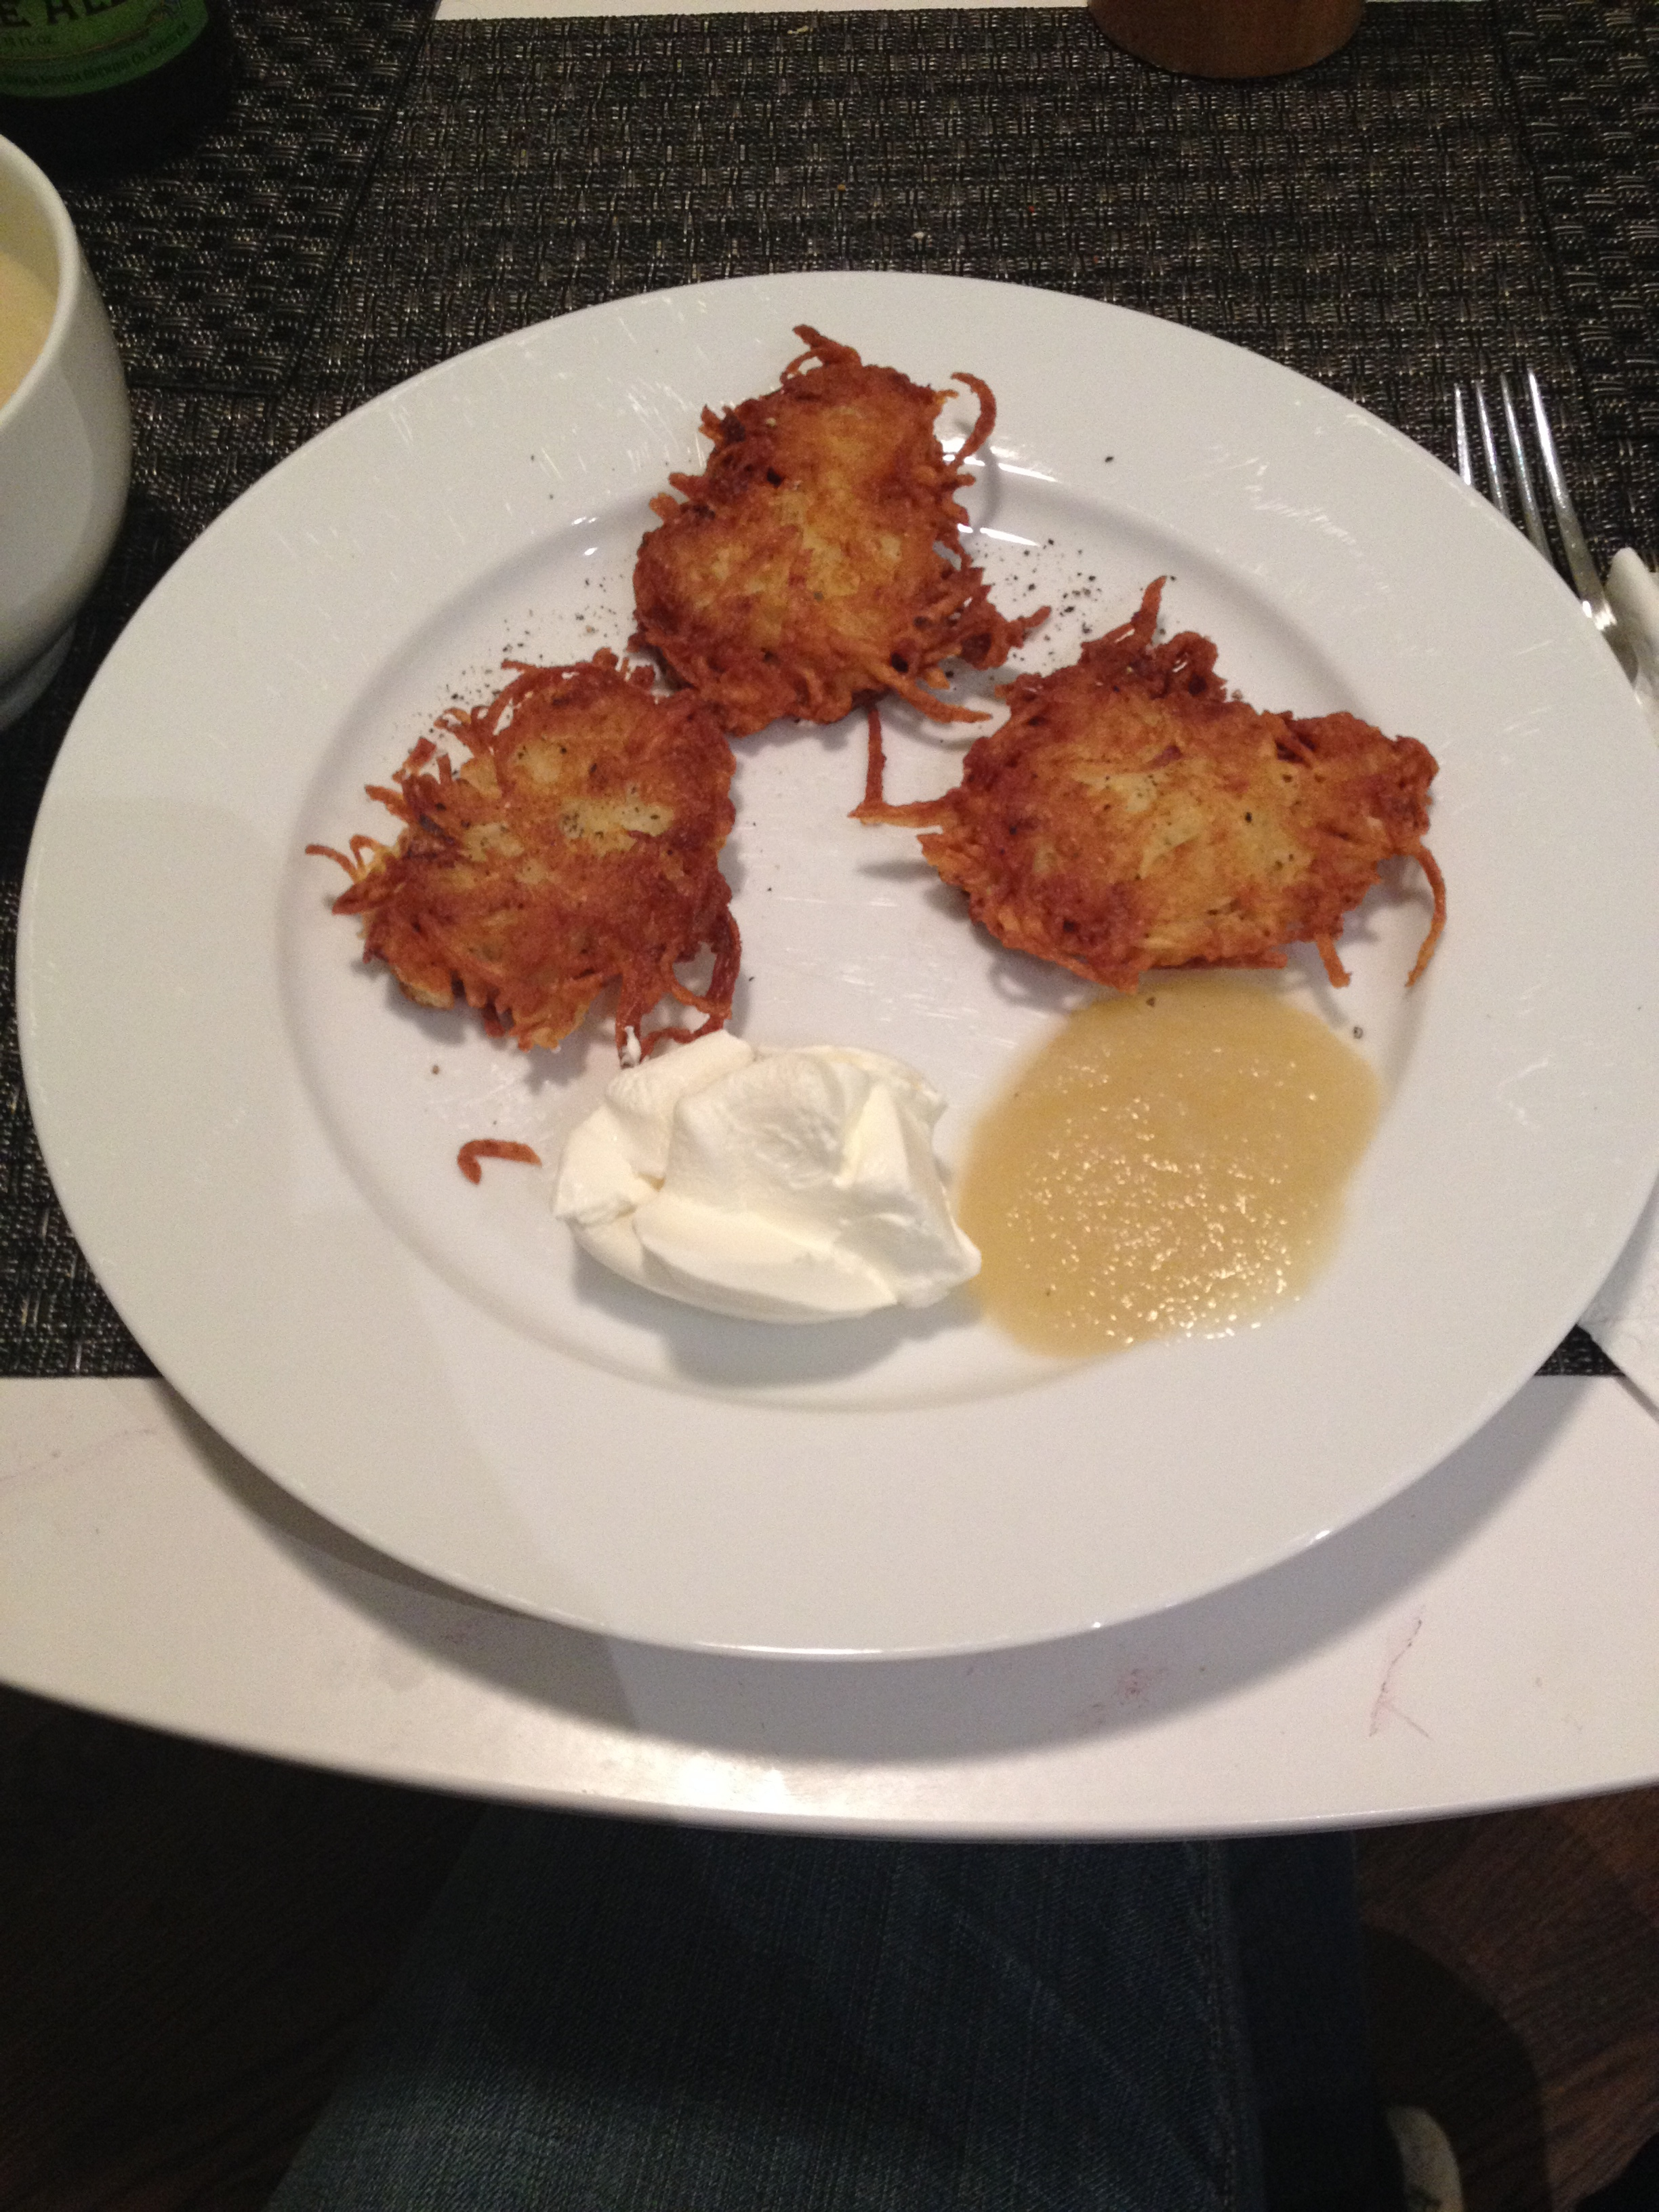 Homemade latkes with sour cream and applesauce